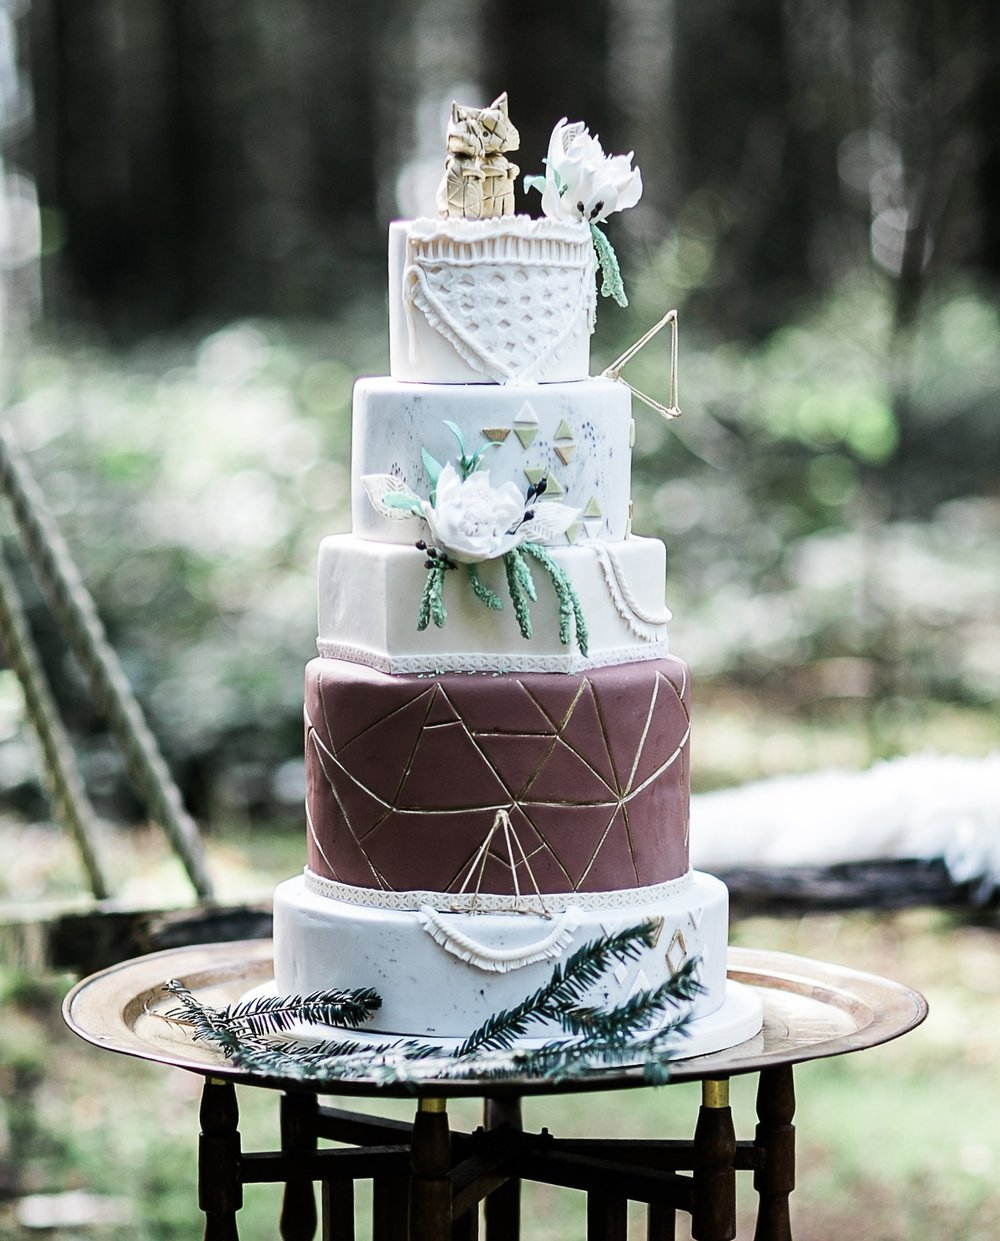 Photo Credit SamieLeePhotography Boho Woodland Wedding Cake 5 Tier wedding cake completed with edible macrame trim, hand crafted geometric gold foxes and white sugar proteas and berries. Serves 200 £760